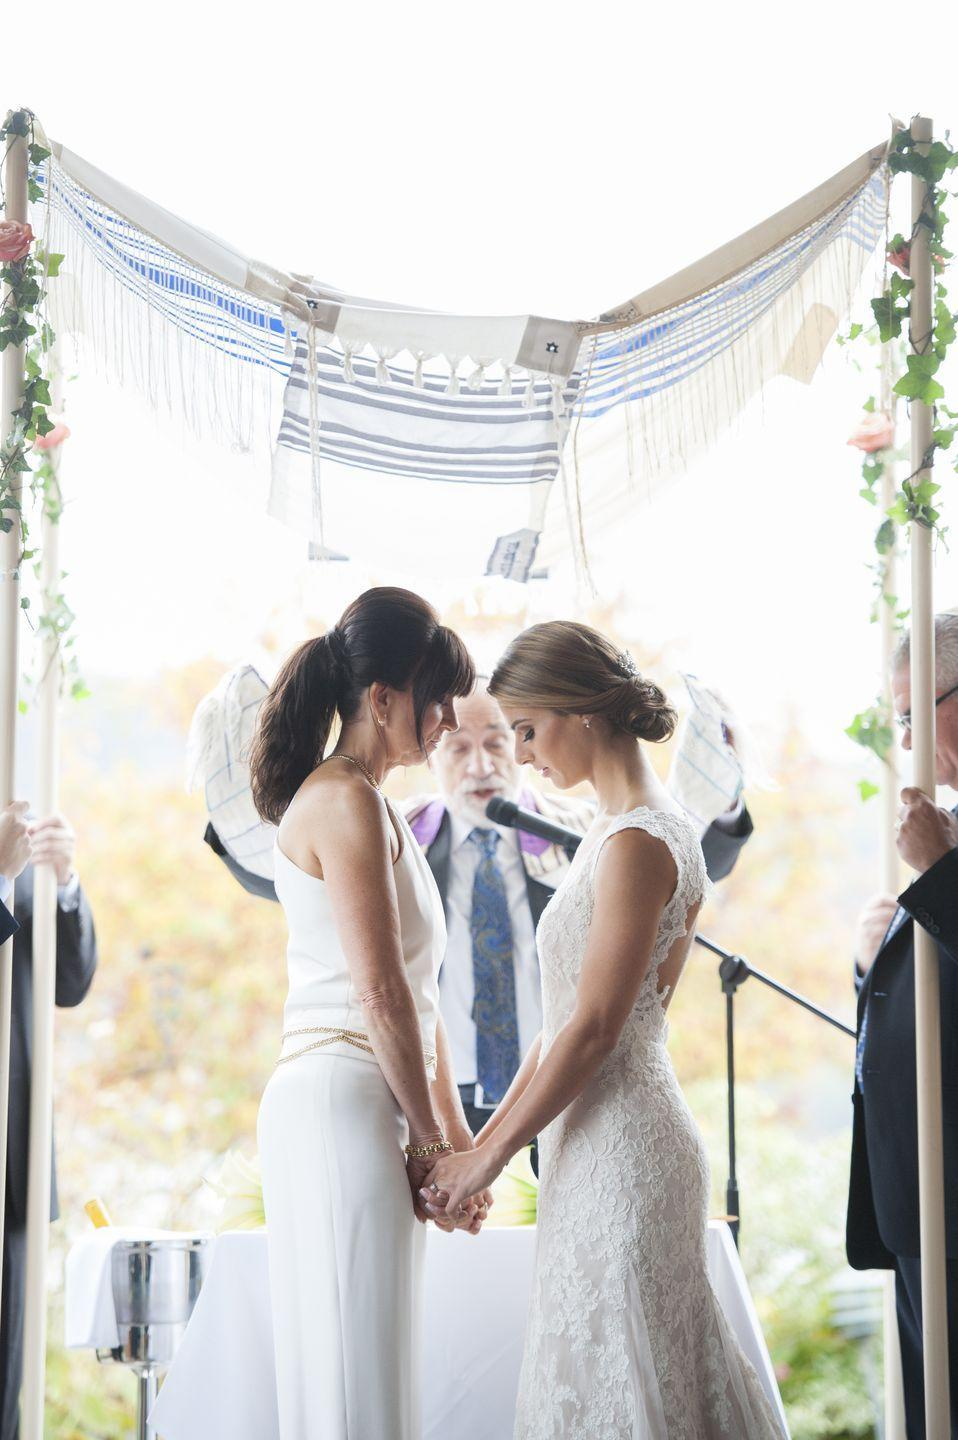 """<p>The BFFs tied the knot on October 25, 2015: """"Life is still scary for LGBT+ couples, but knowing that we are best friends and in this journey together makes everything okay,"""" they said.</p>"""